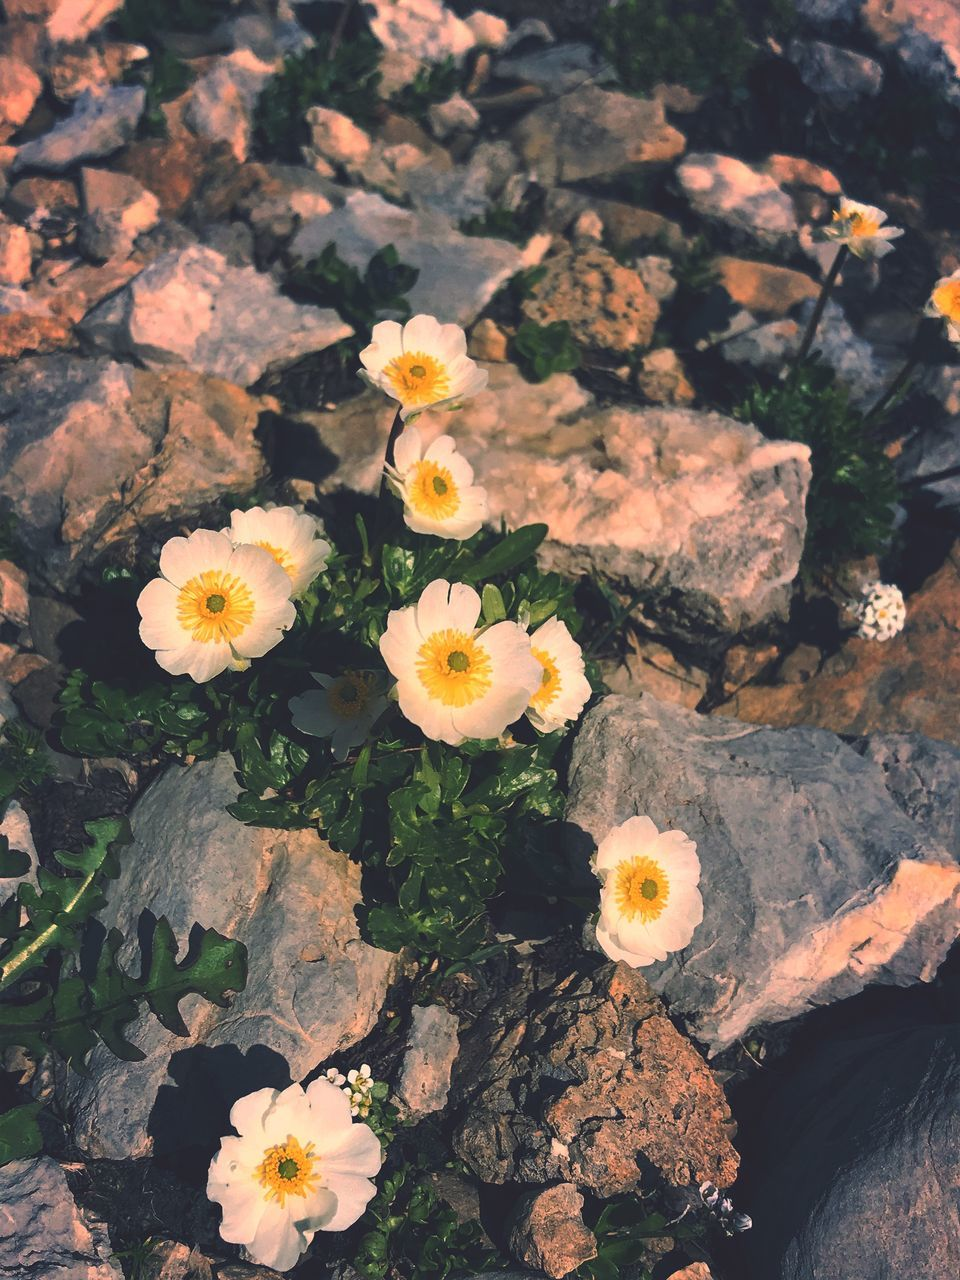 flowering plant, flower, vulnerability, plant, freshness, beauty in nature, fragility, nature, petal, close-up, flower head, growth, no people, inflorescence, high angle view, day, outdoors, yellow, rock, field, pollen